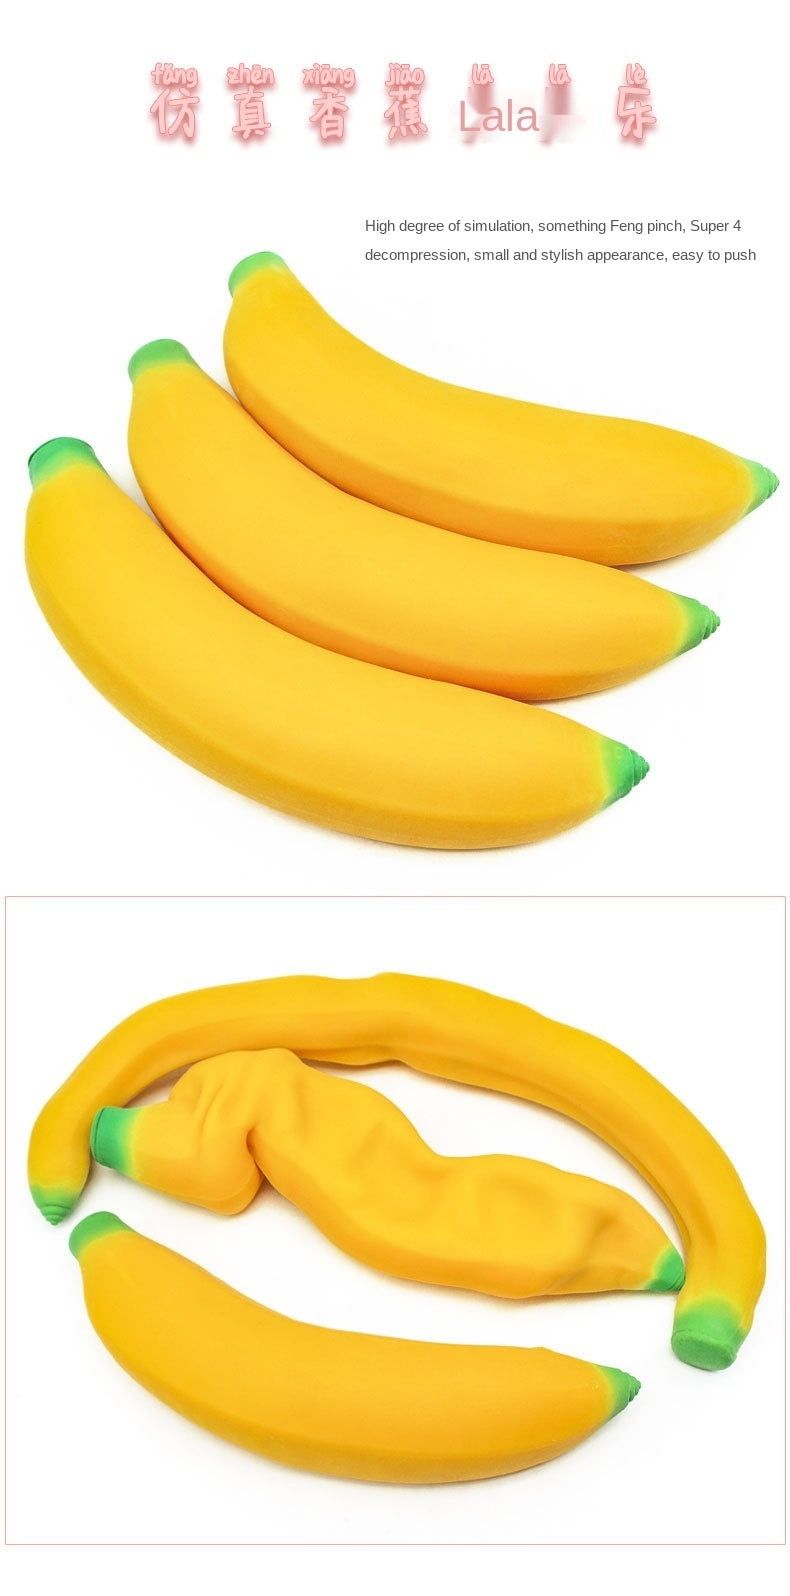 2021 Best Seller TPR Banana Simulation Lala Pad Lassa Filling New Strange Vent Stress Toy Cute Squishy Toys Stress Reliever enlarge